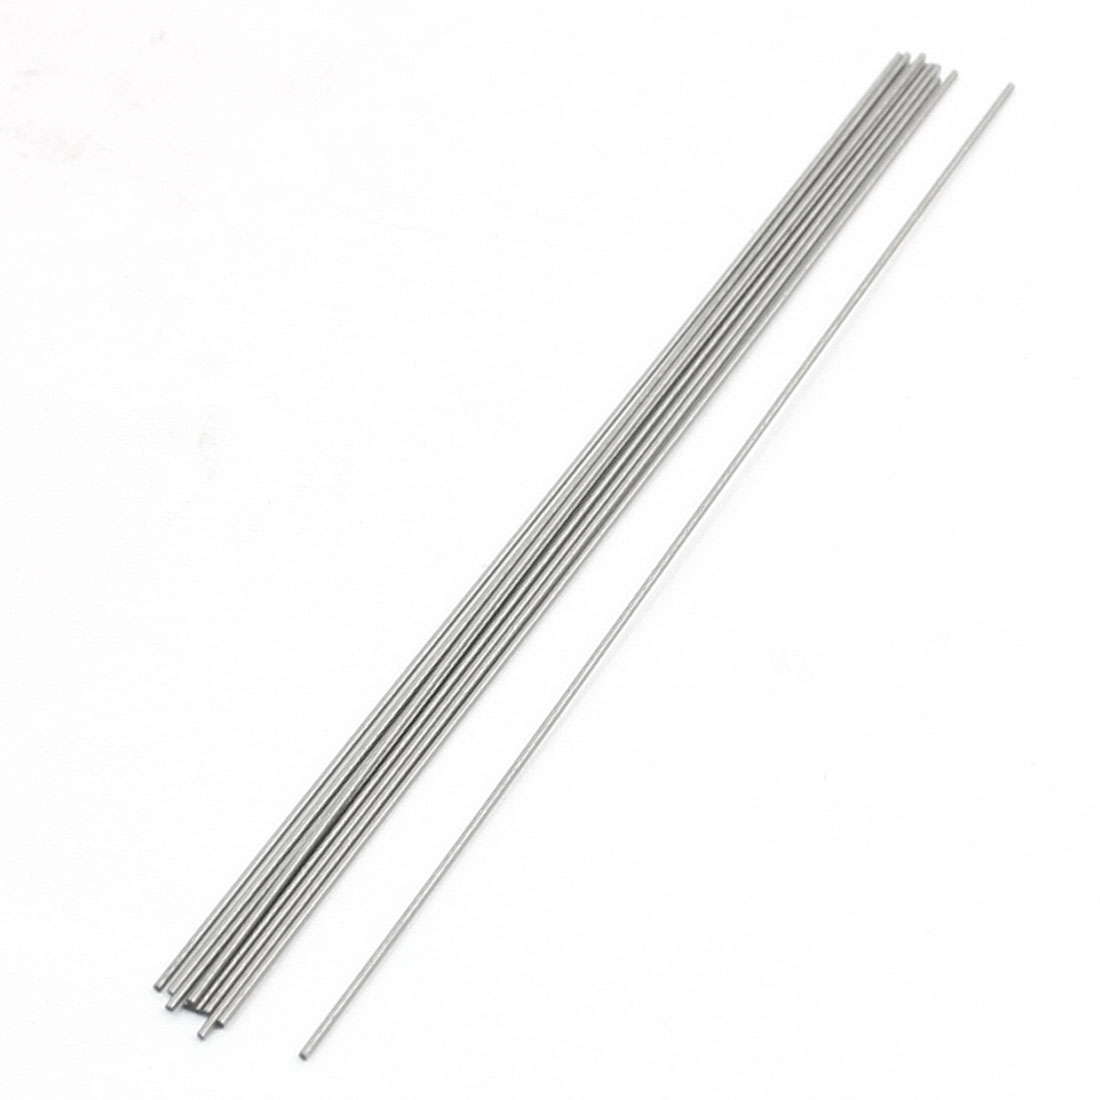 Unique Bargains 10 Pcs HSS High Speed Steel Round Turning Lathe Bars 0.6mm x 100mm by Unique-Bargains